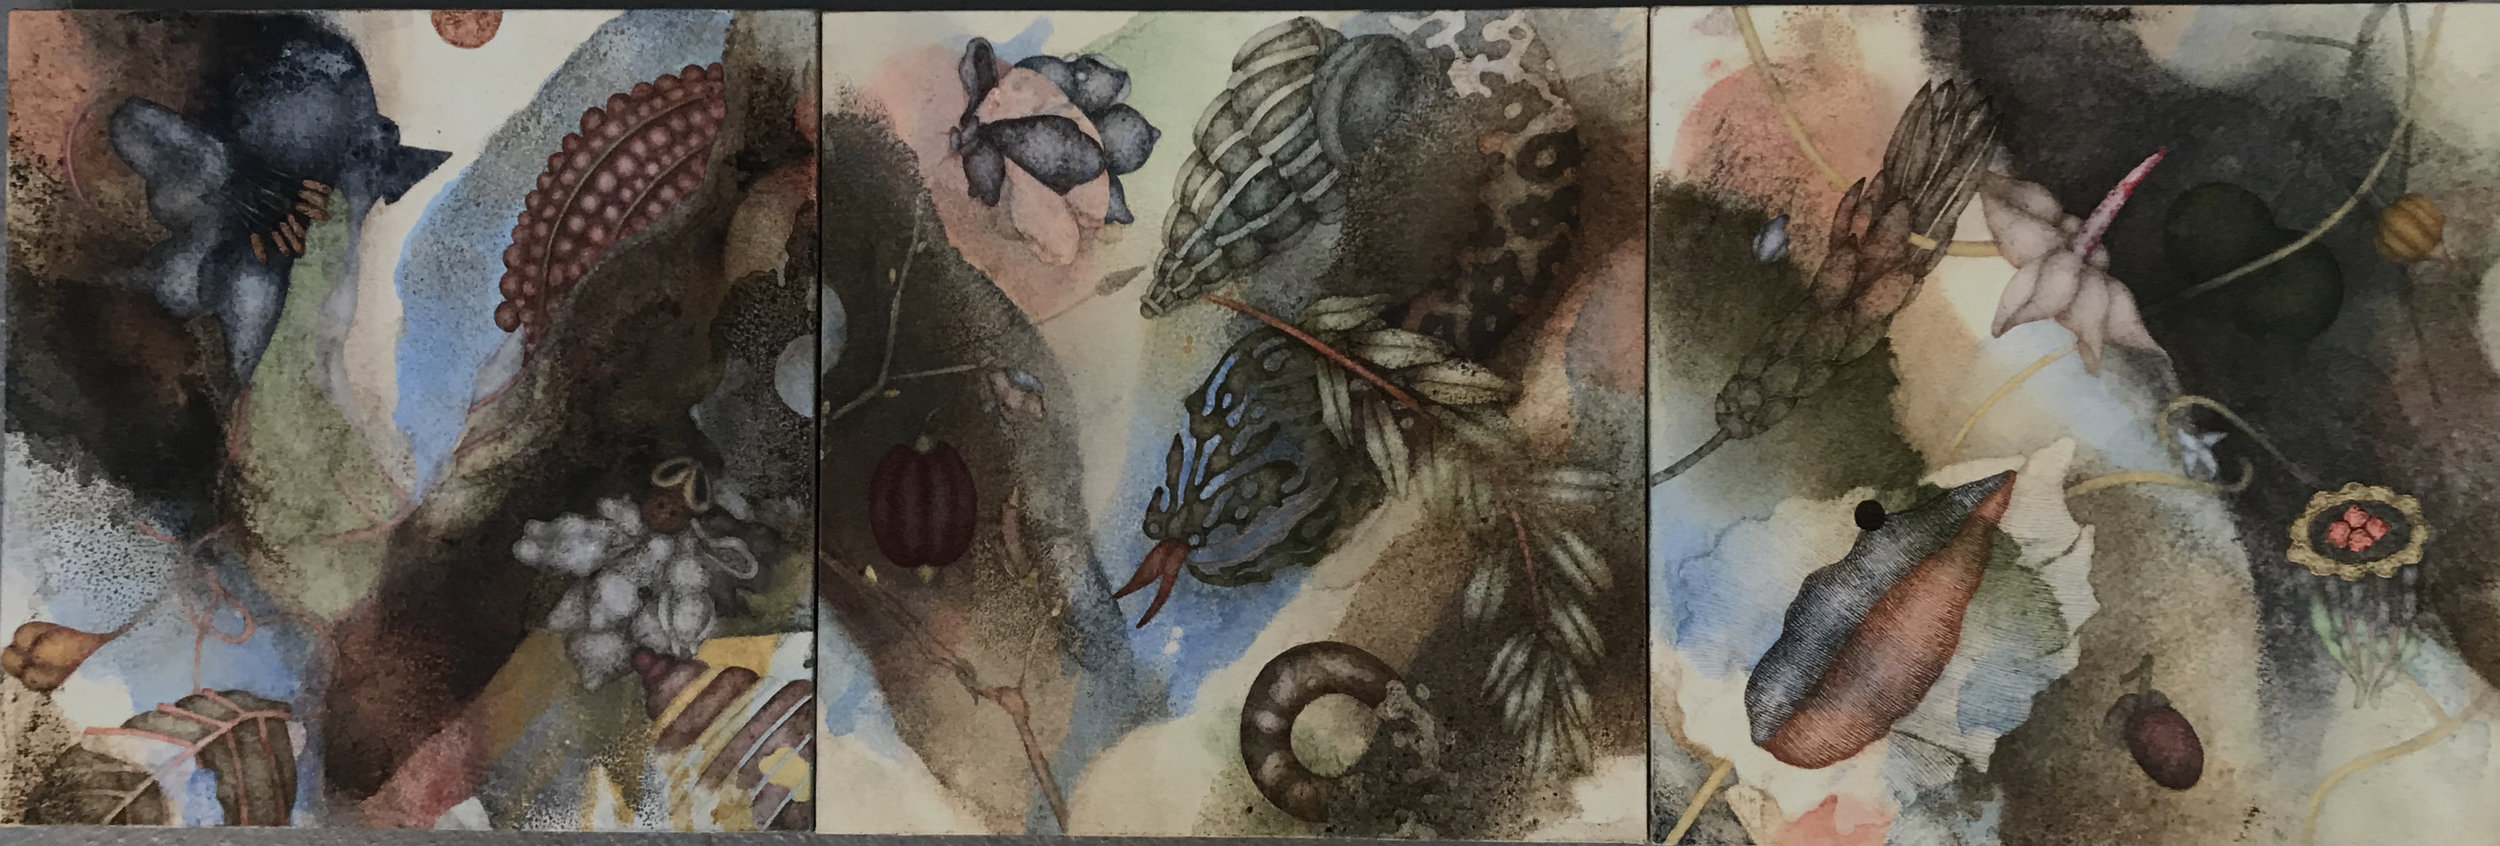 Copy of Carnaval Dust II (2019), 10in x 30in, oil, asphaltum, encaustic, gold leaf on Okawara paper on panel(s)